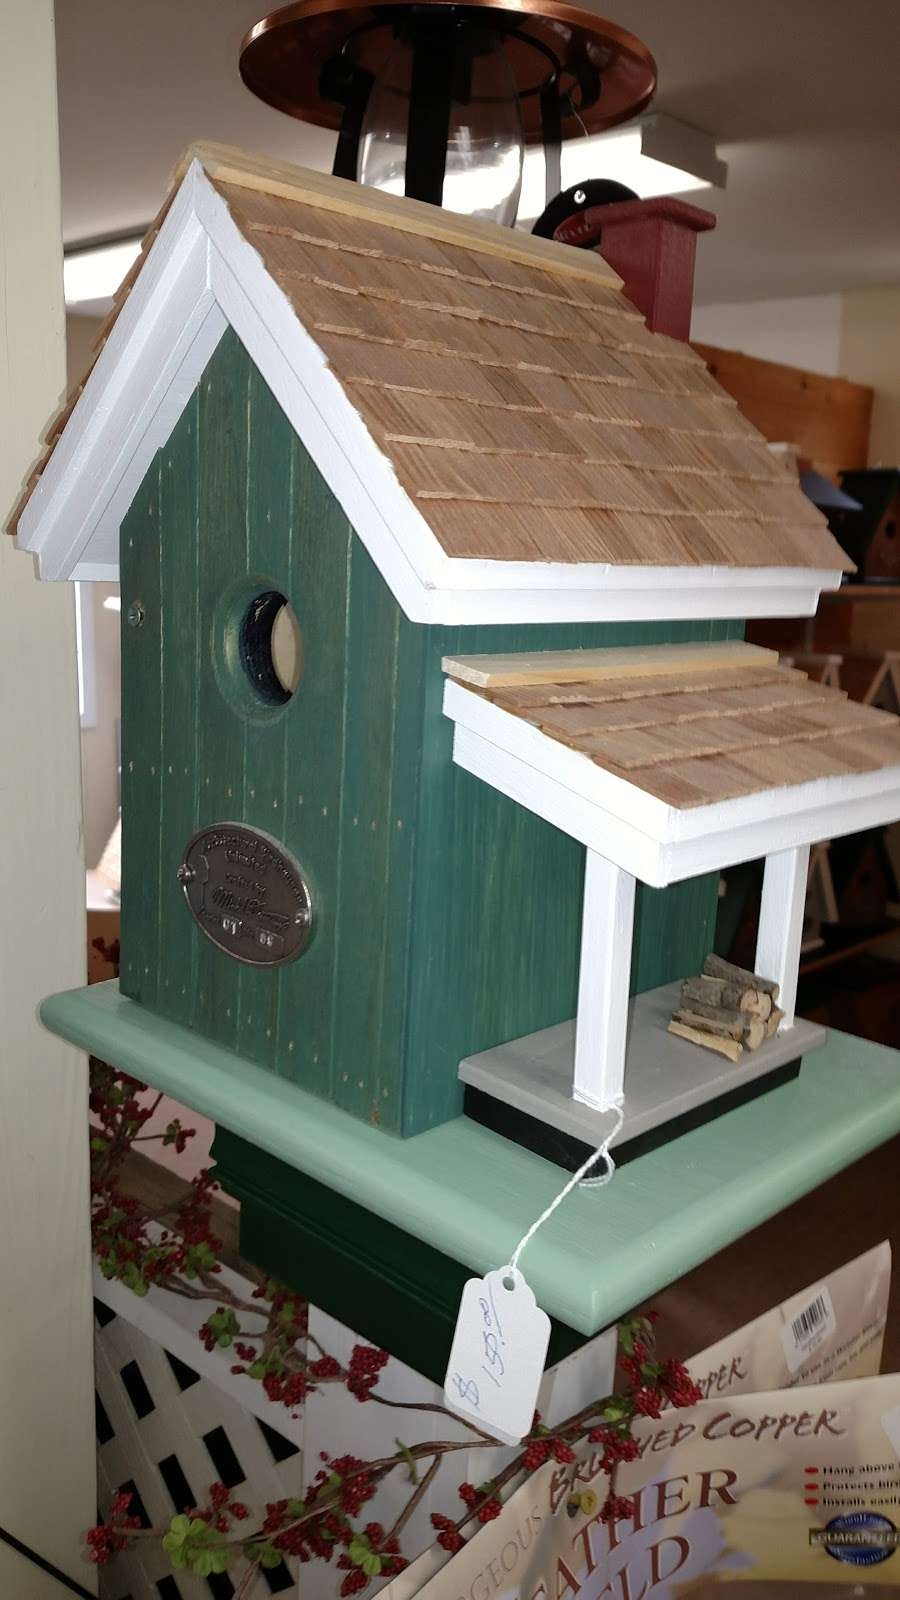 Architectural Birdhouses Unlimited - pet store  | Photo 4 of 10 | Address: 276 NH-101, Amherst, NH 03031, USA | Phone: (603) 554-8869